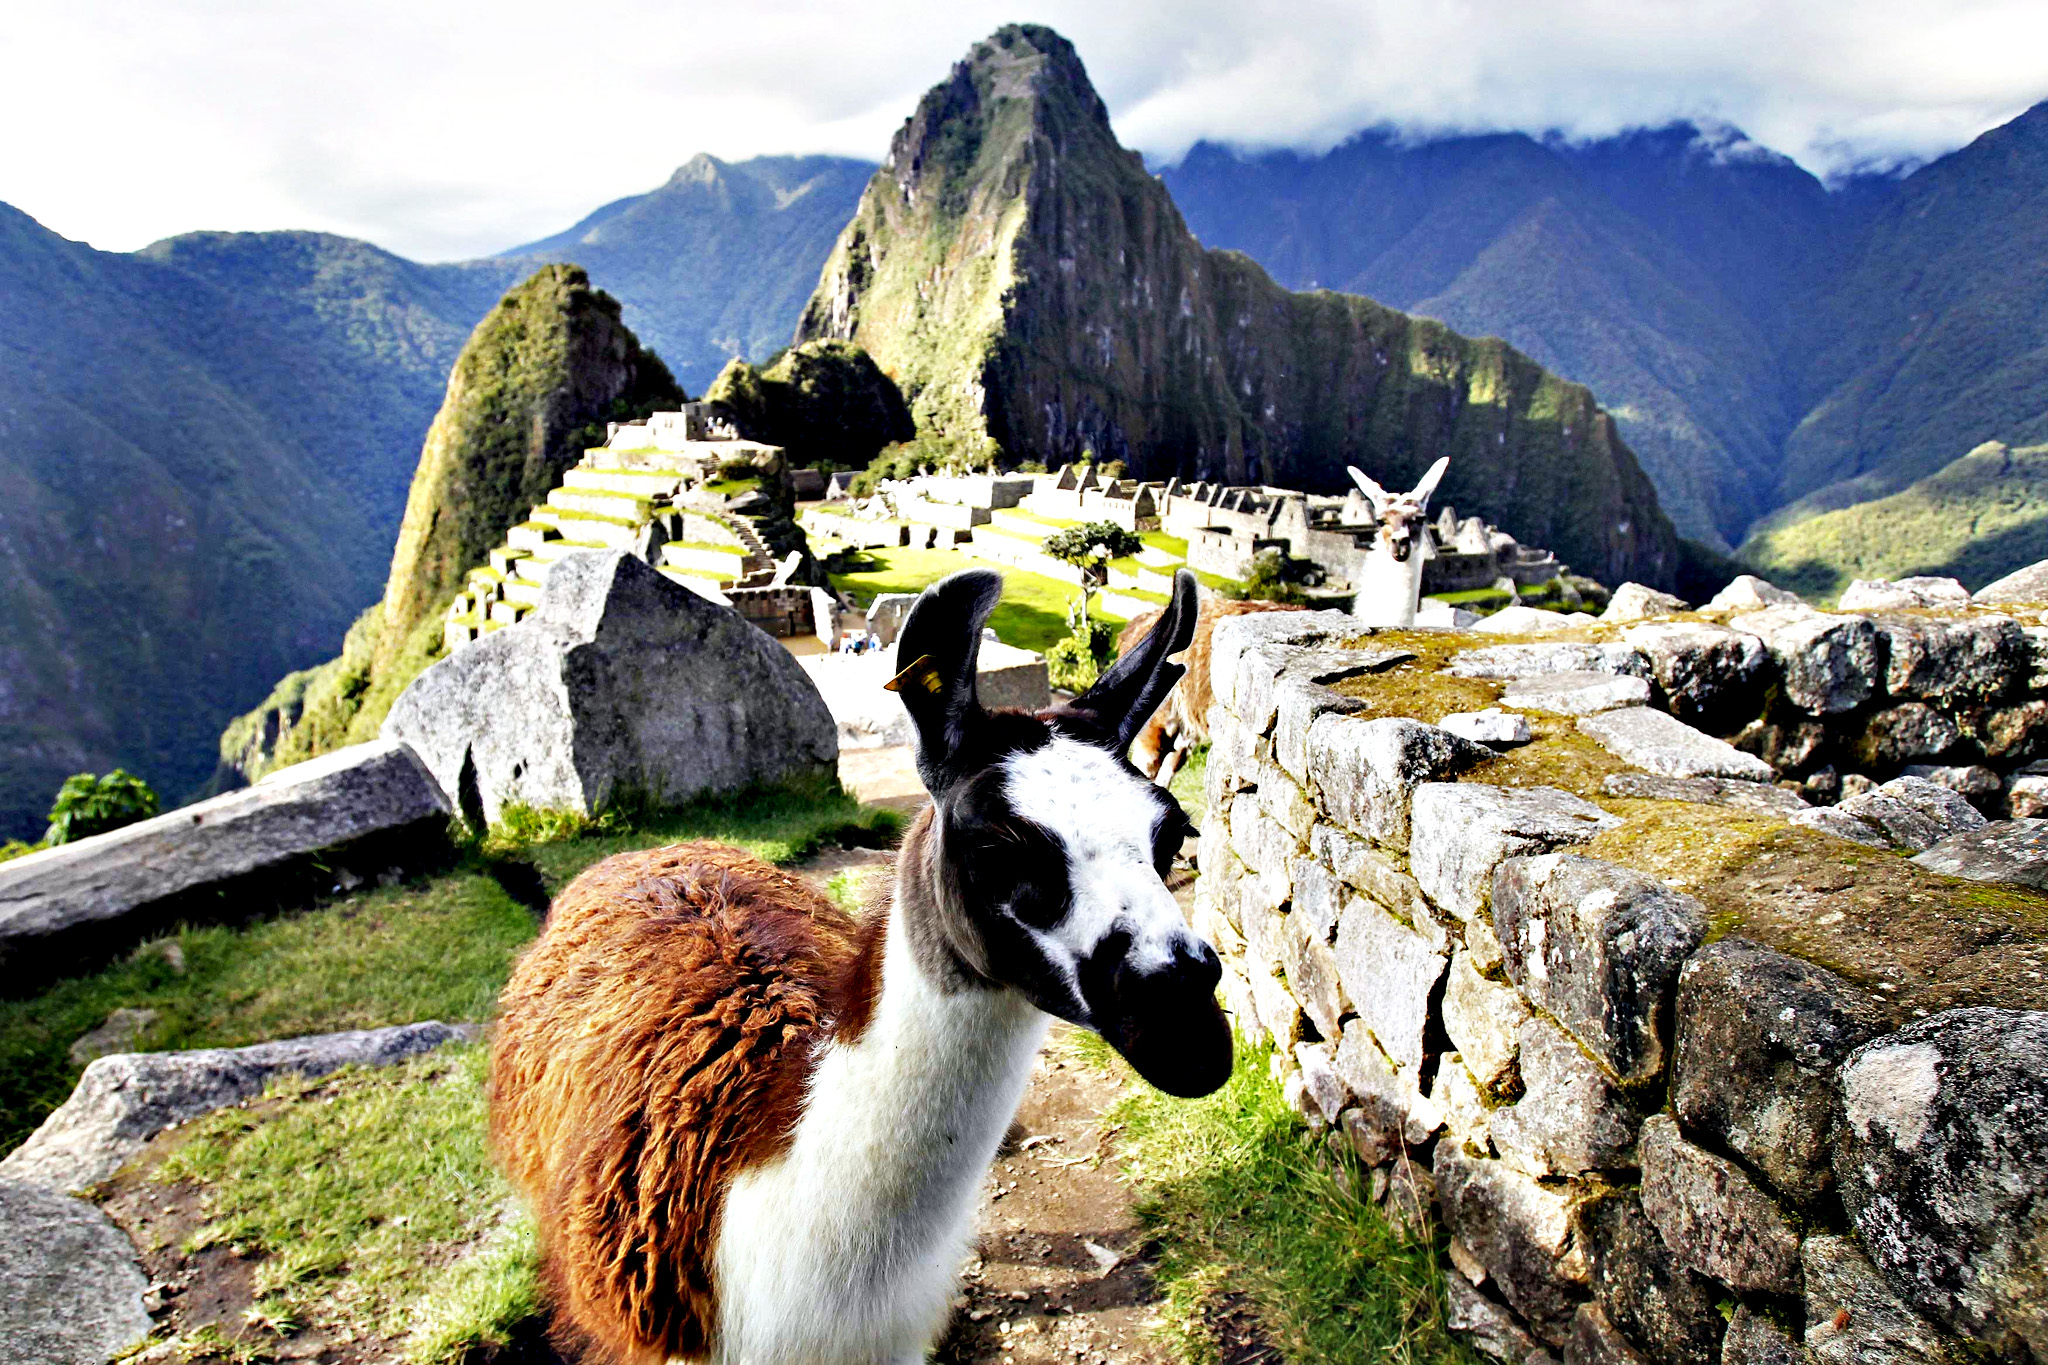 Llamas are seen in front of the Inca citadel of Machu Picchu in Cusco. Machu Picchu, a UNESCO World Heritage Site, is Peru's top tourist attraction, with the government limiting tourists to 2,500 per day due to safety reasons and concerns over the preservation of the ruins.